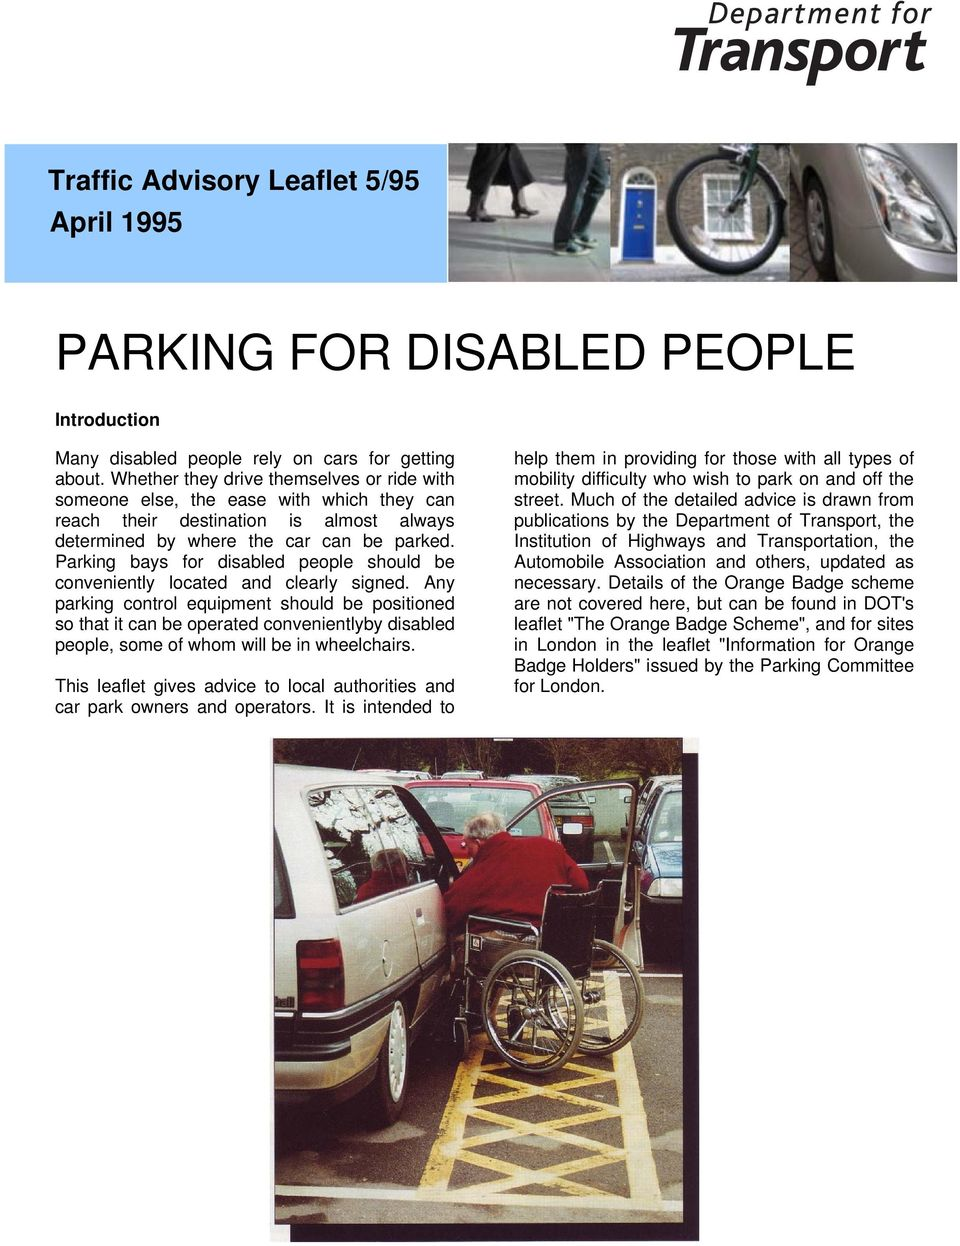 Parking bays for disabled people should be conveniently located and clearly signed.